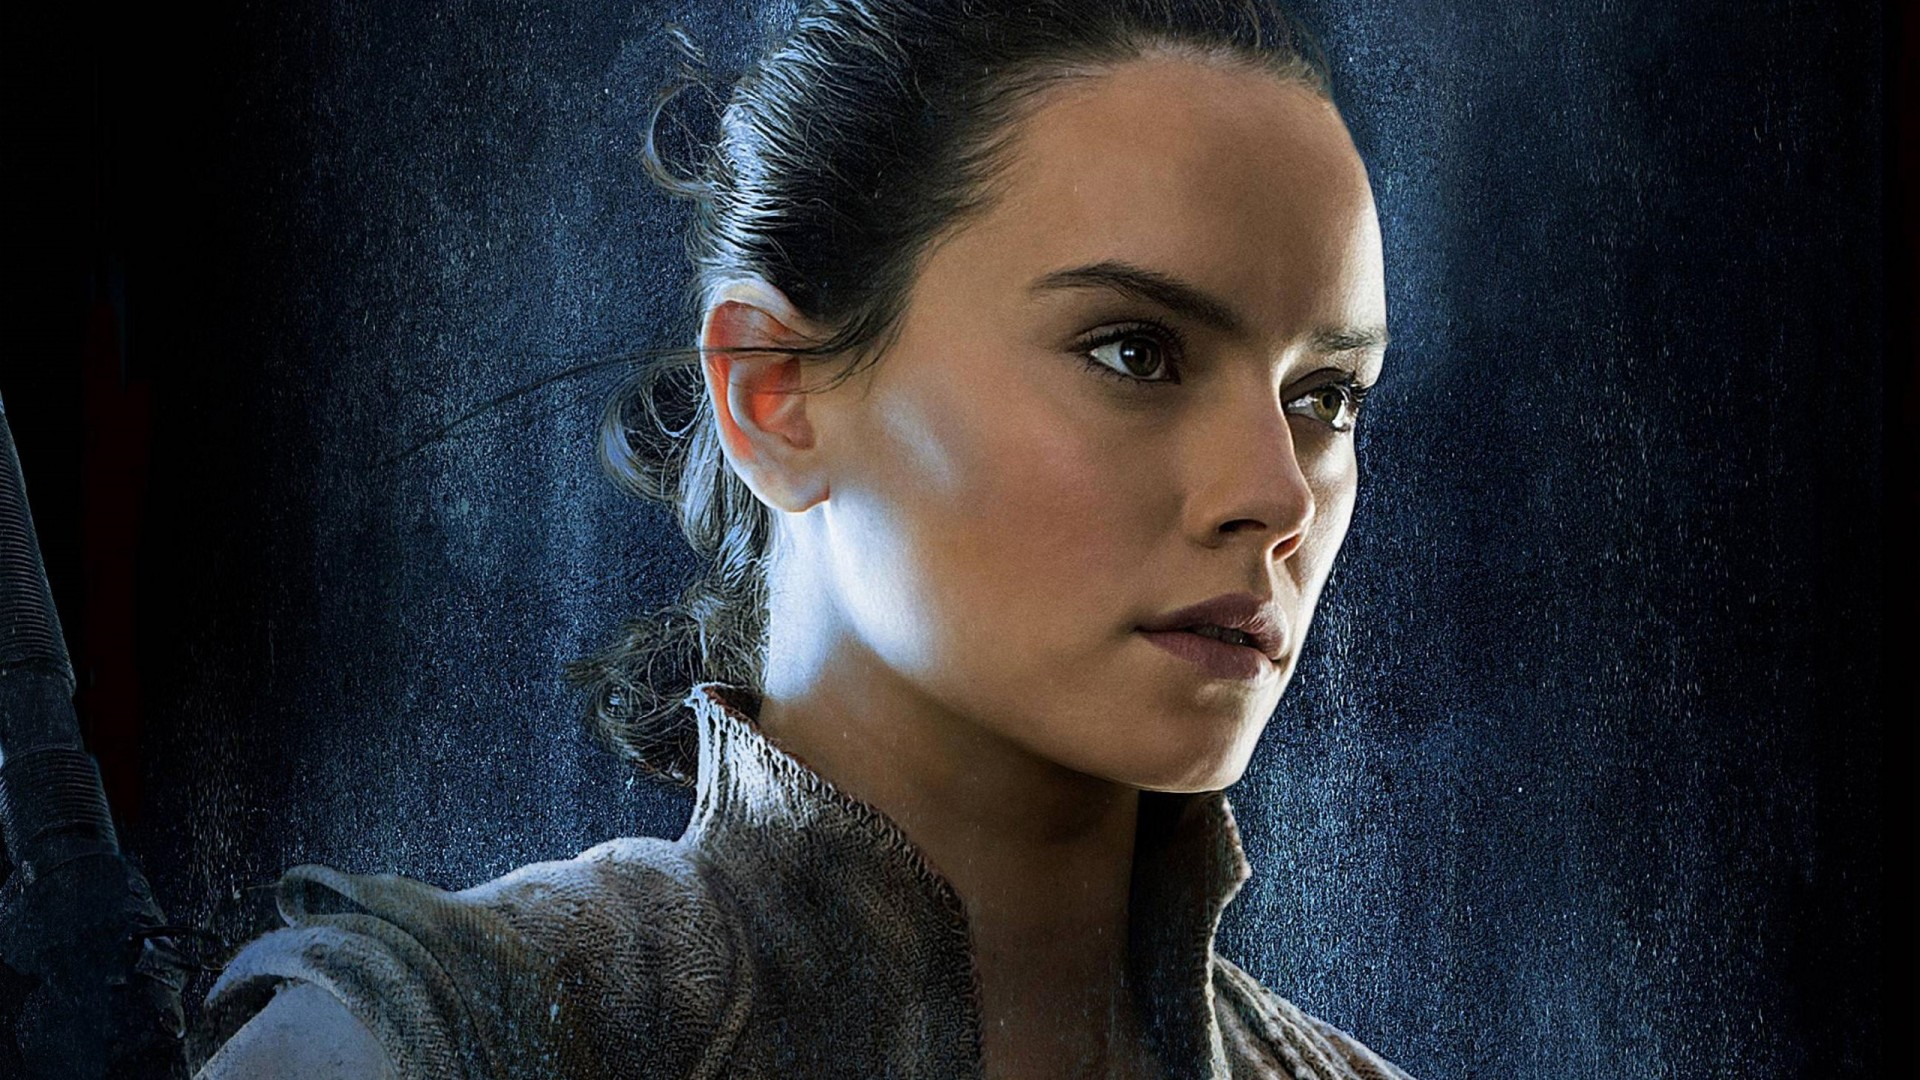 Daisy Ridley Rey Star Wars The Last Jedi 1920x1080 1080p Wallpaper The Hot Desktop Wallpapers And Backgrounds For Your Pc And Mobile